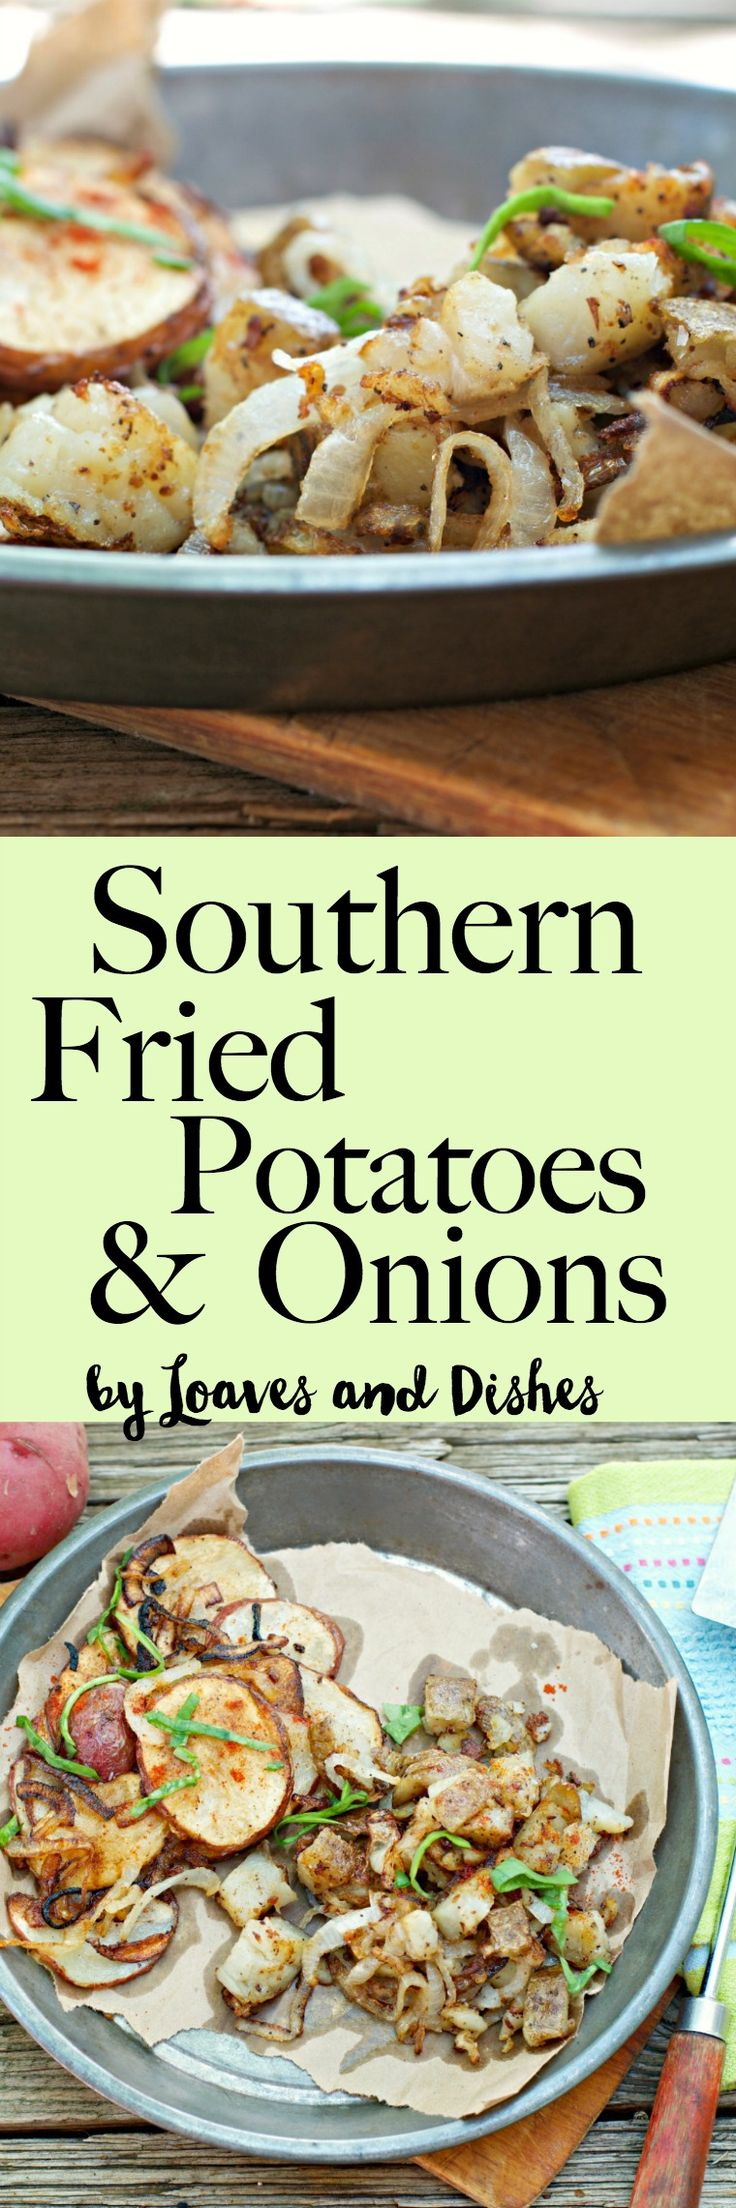 This recipe is for fried potatoes and onions in the old southern way made in a cast iron pan. Sliced and pan fried for healthy home fries. Simple. skillet fries, breakfast food gone wild, Crispy meals from the deep south.